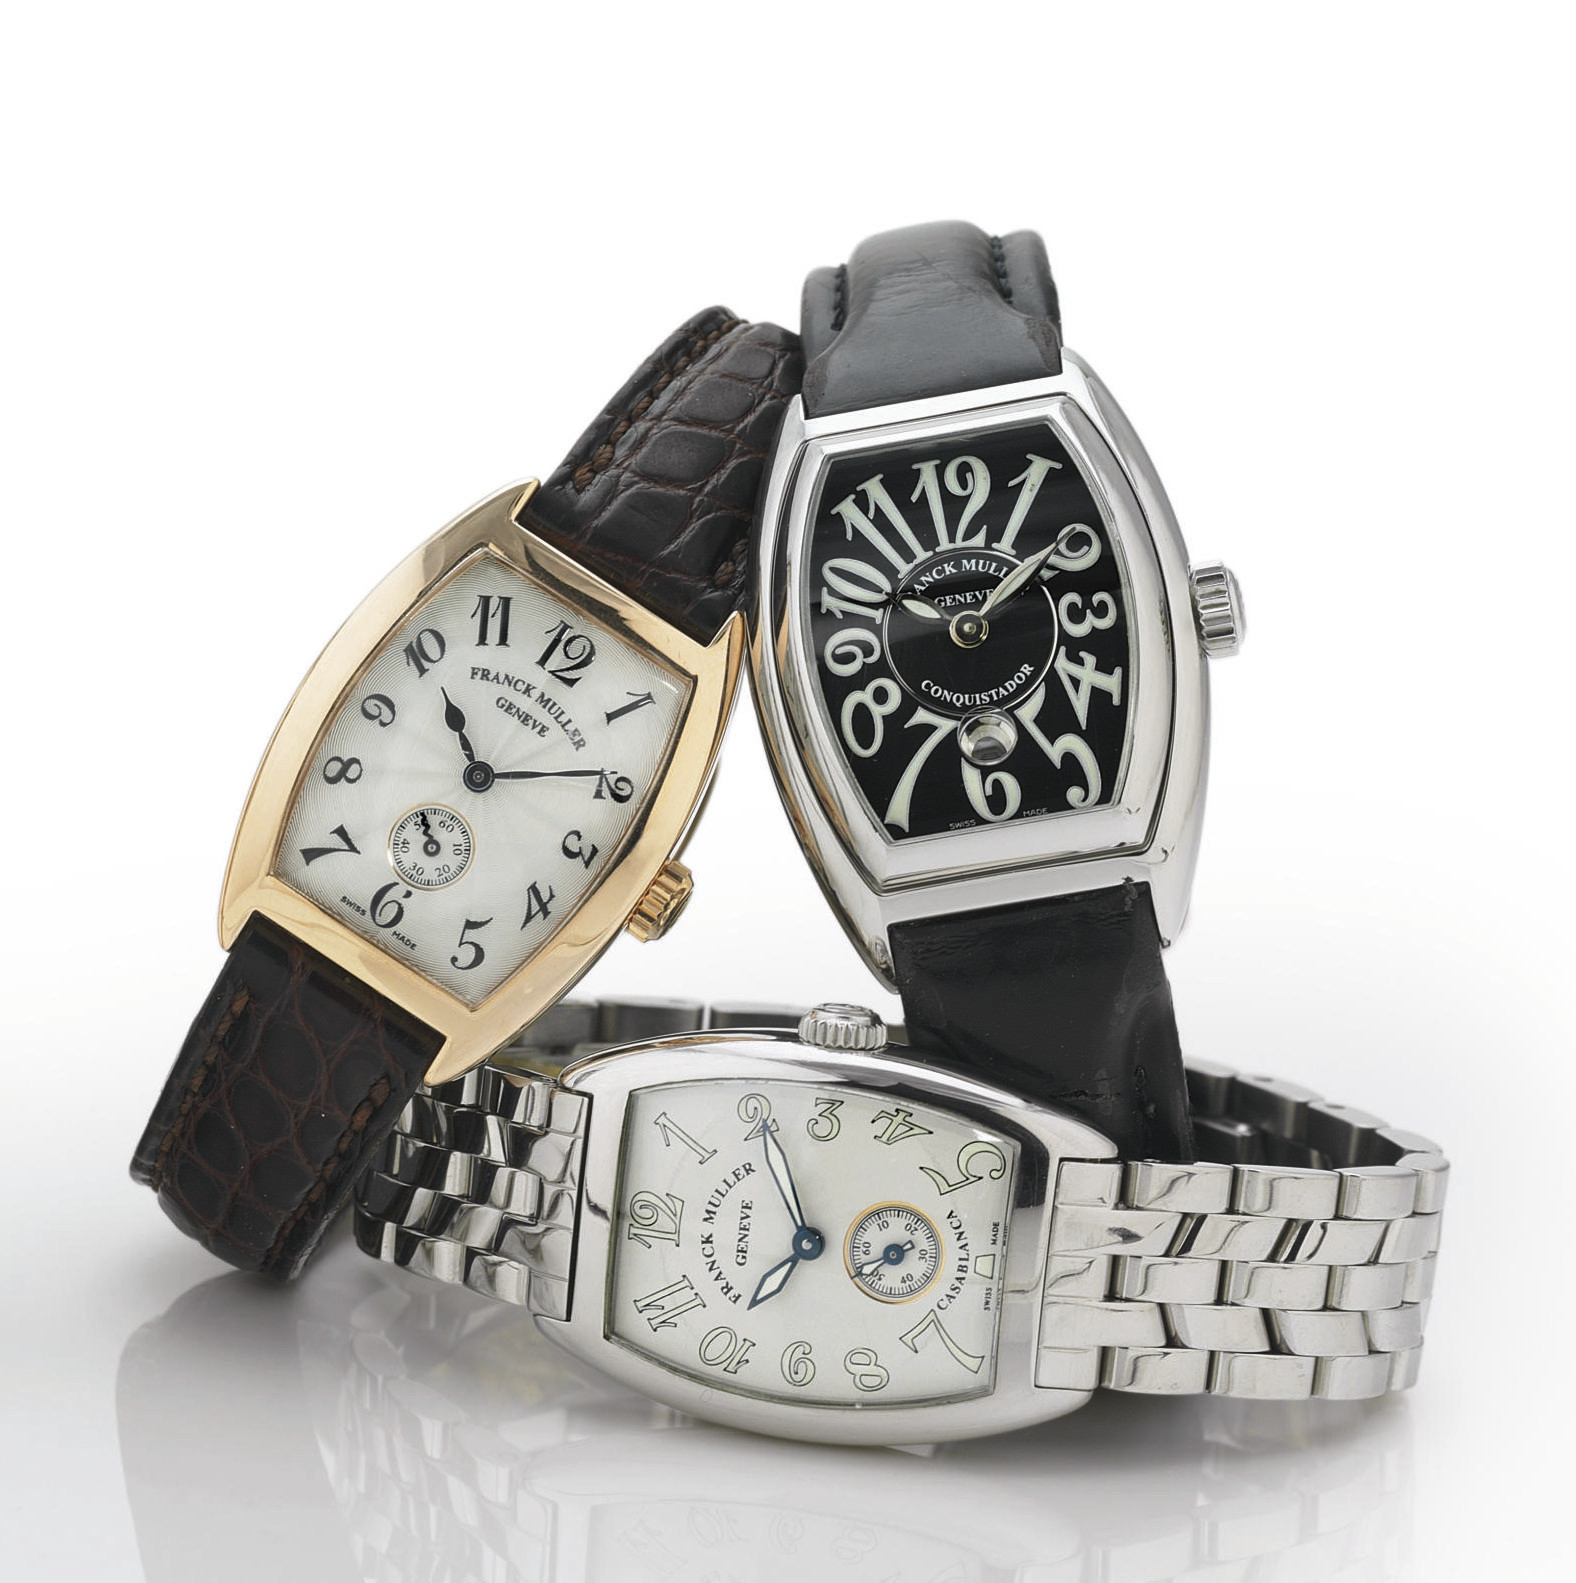 FRANCK MULLER. A GROUP OF THRE